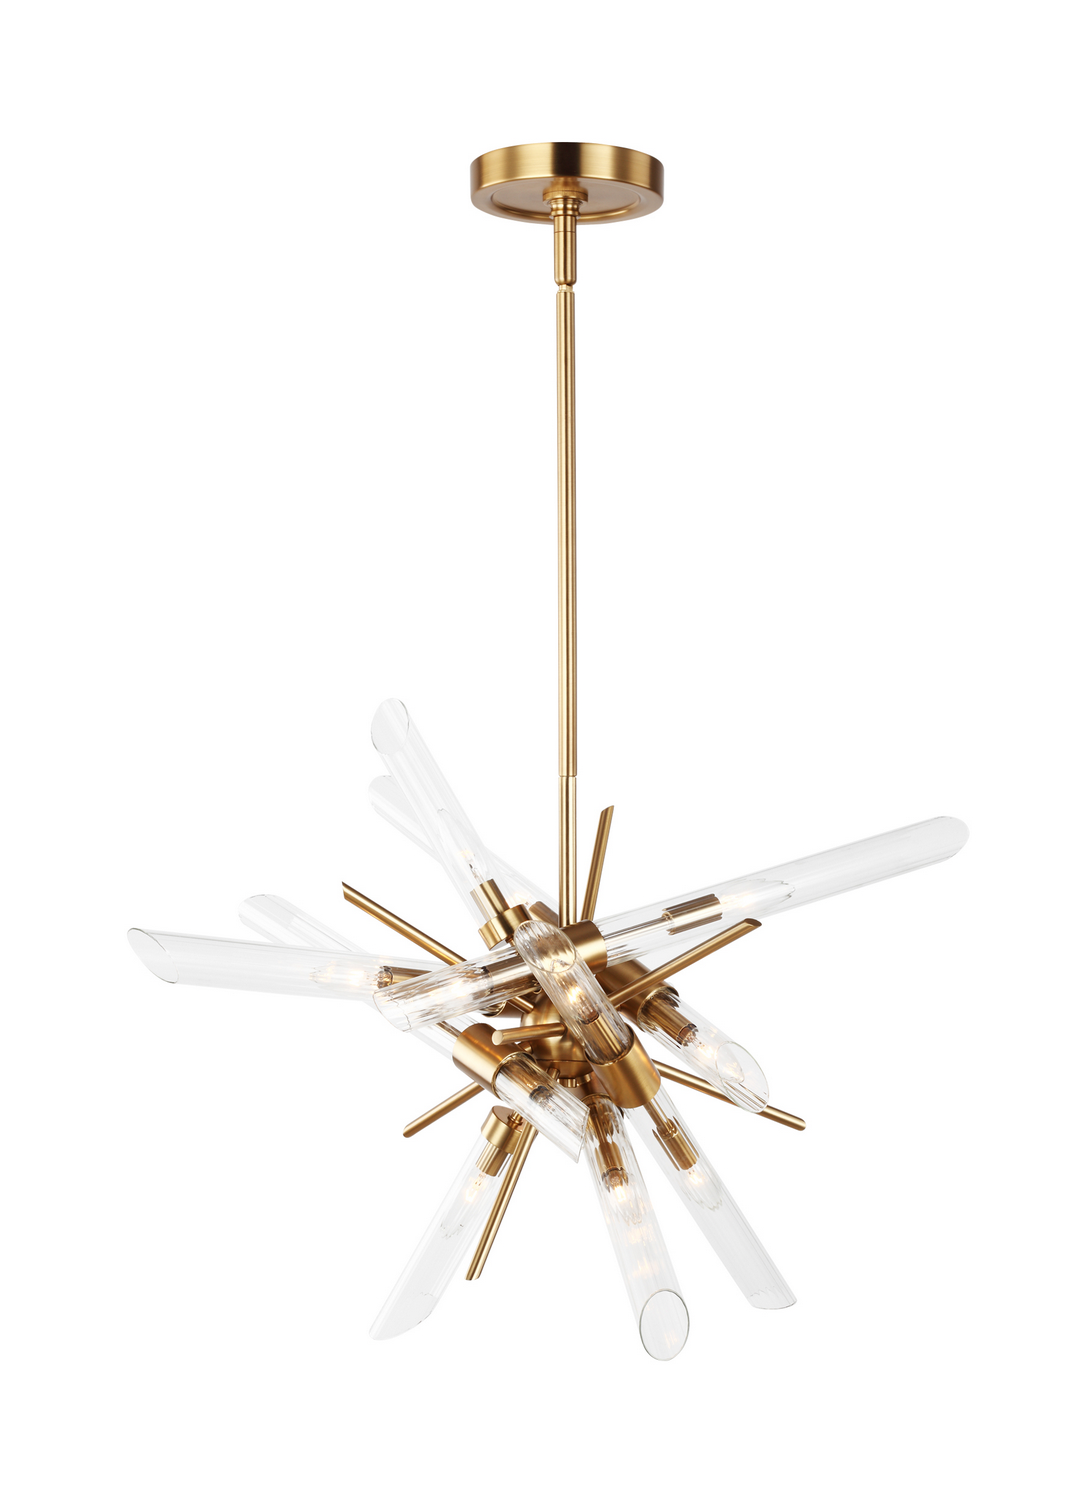 14 Light Chandelier from the Quorra collection by Feiss F318114BBS